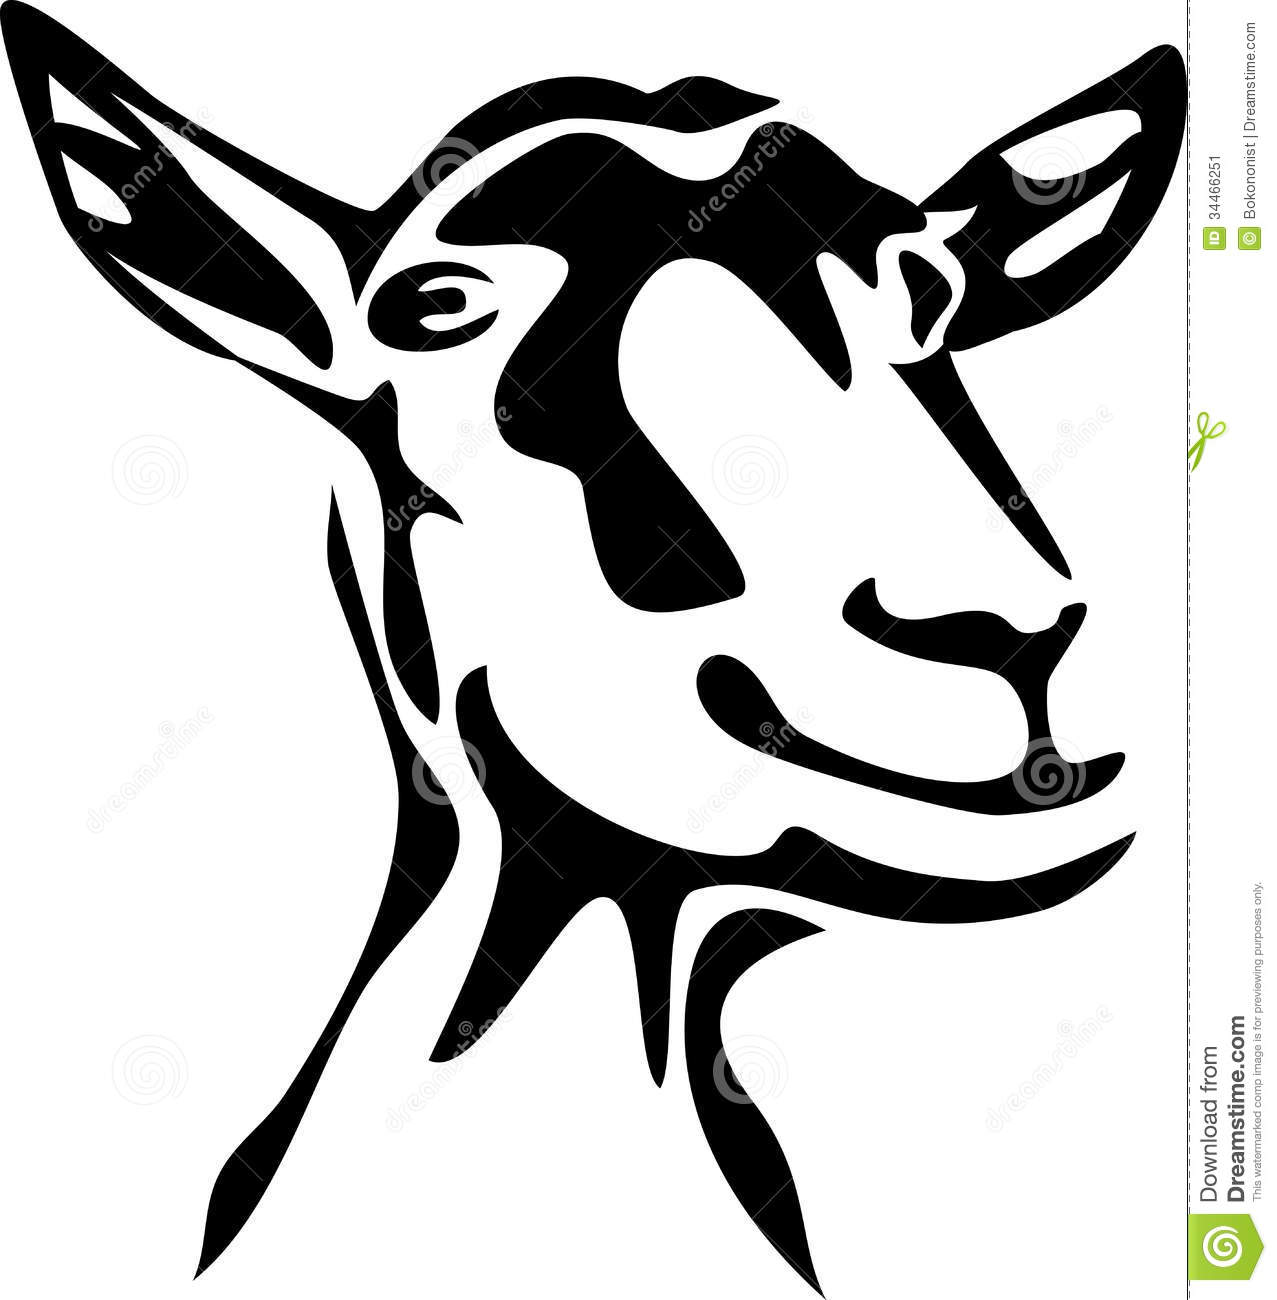 Billy Goat clipart stencil Image: Goat Image: Goats Goat